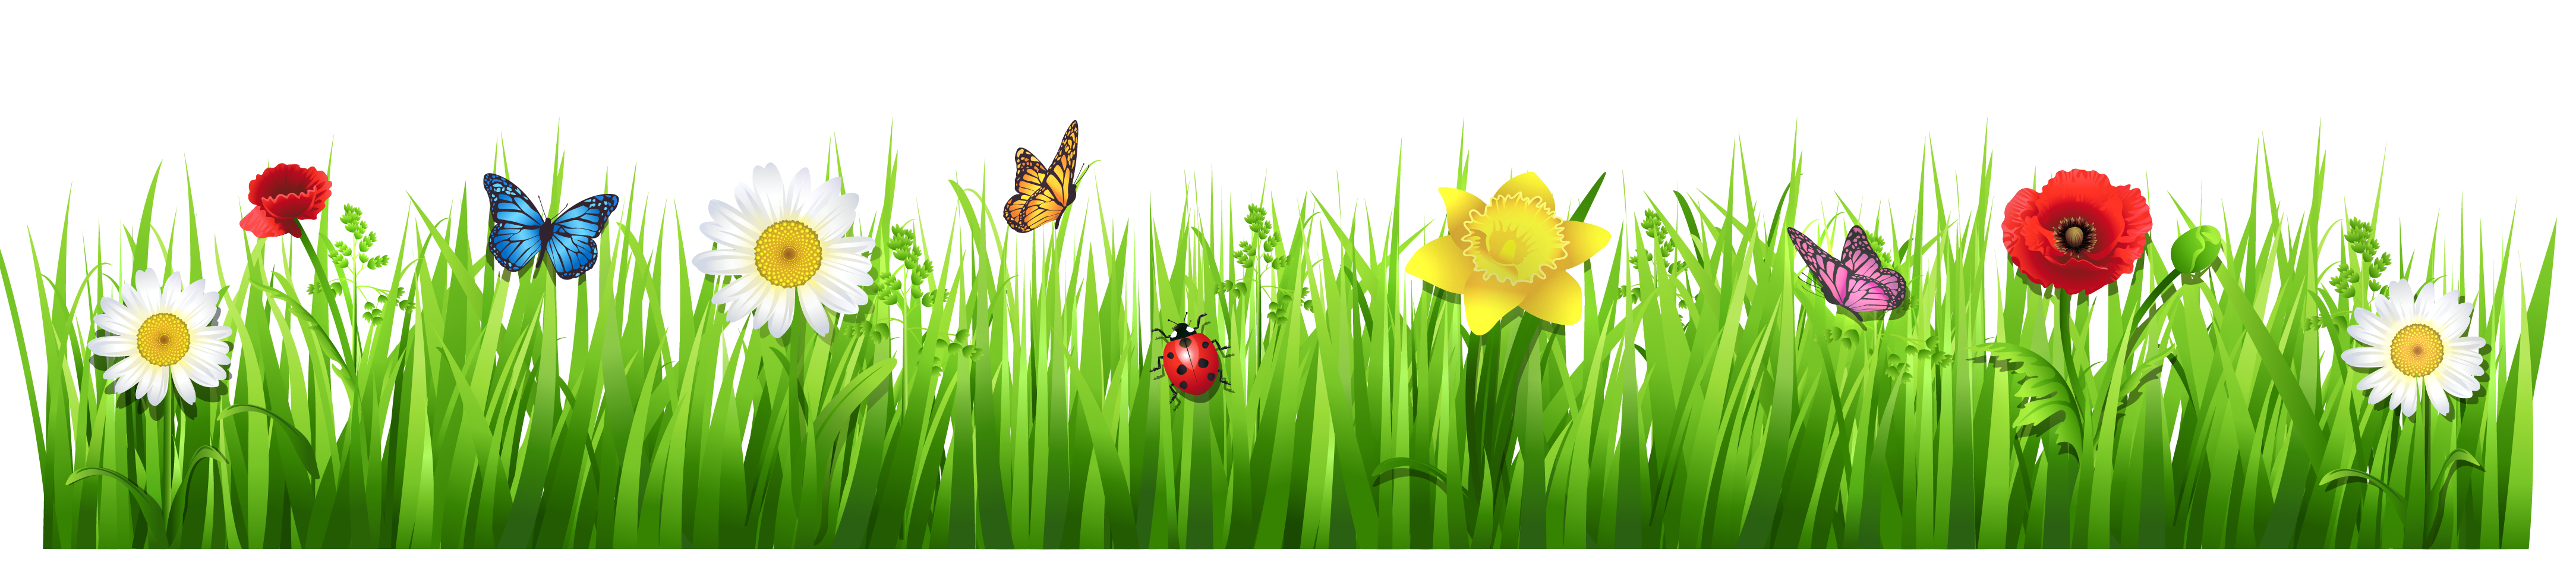 png royalty free Clip art png pinterest. Grass and sky background clipart